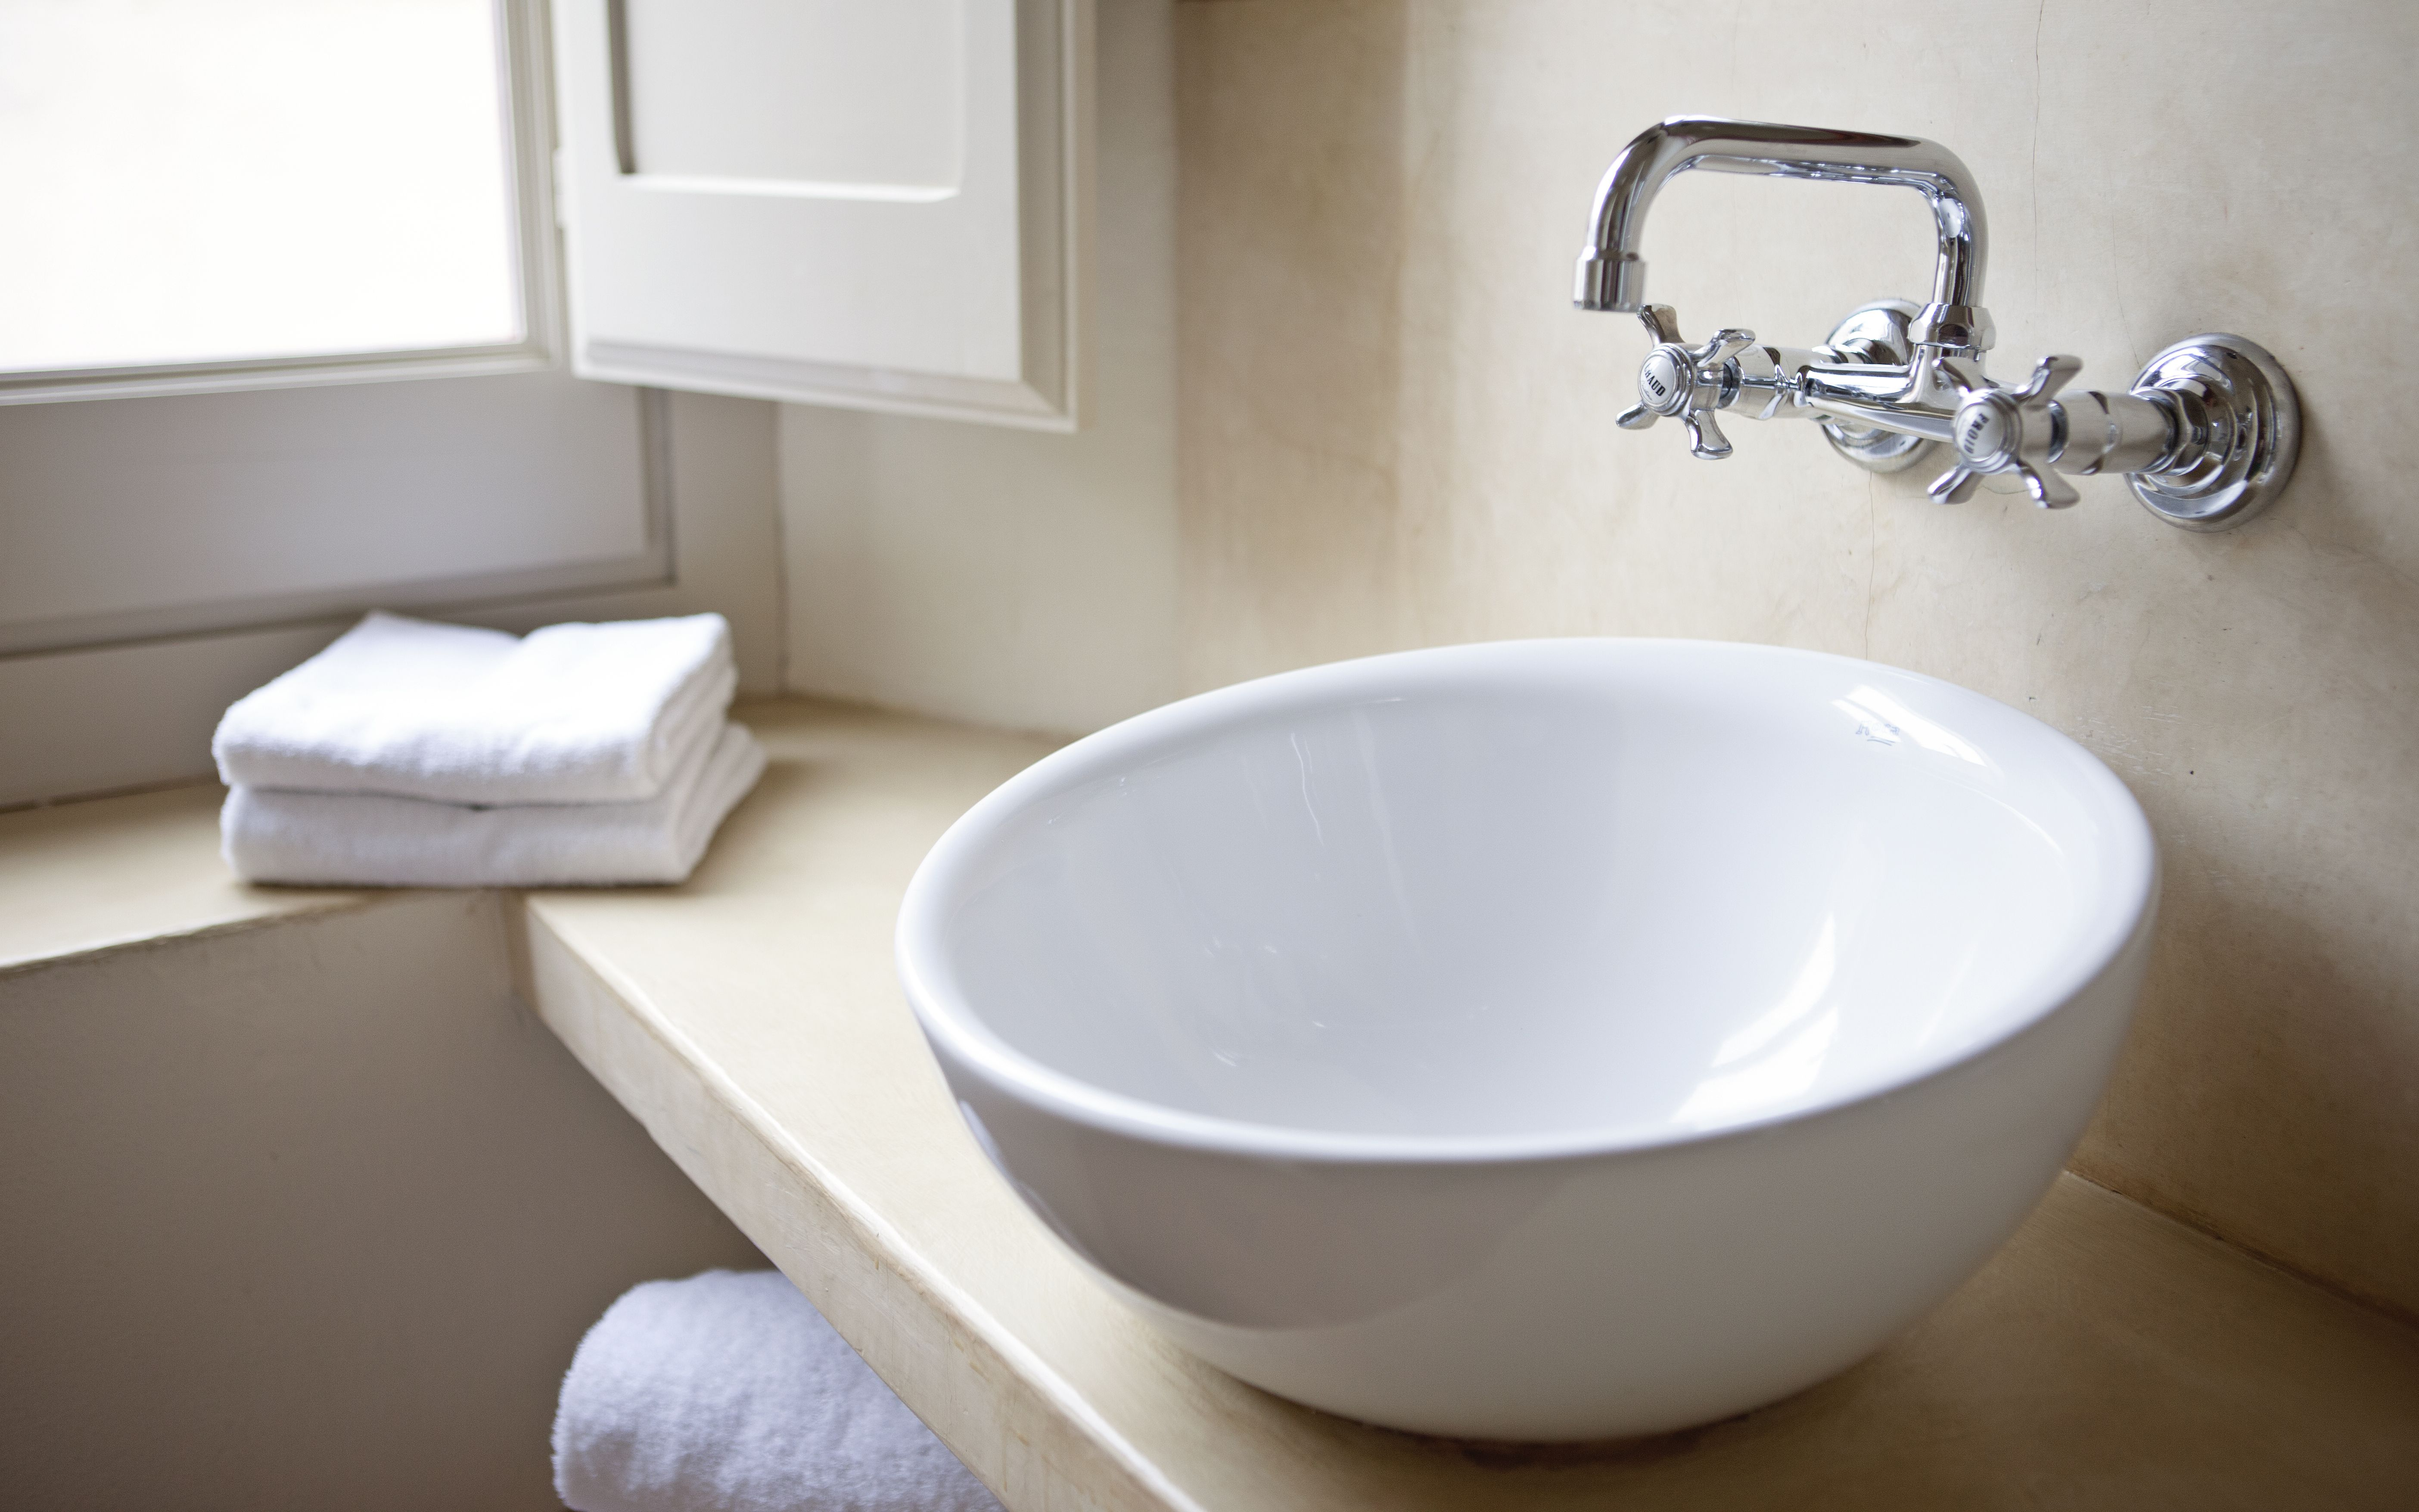 Bathroom Sink, CeraStyle 080500-U, Rectangular White Ceramic Wall Mounted  or Vessel Bathroom